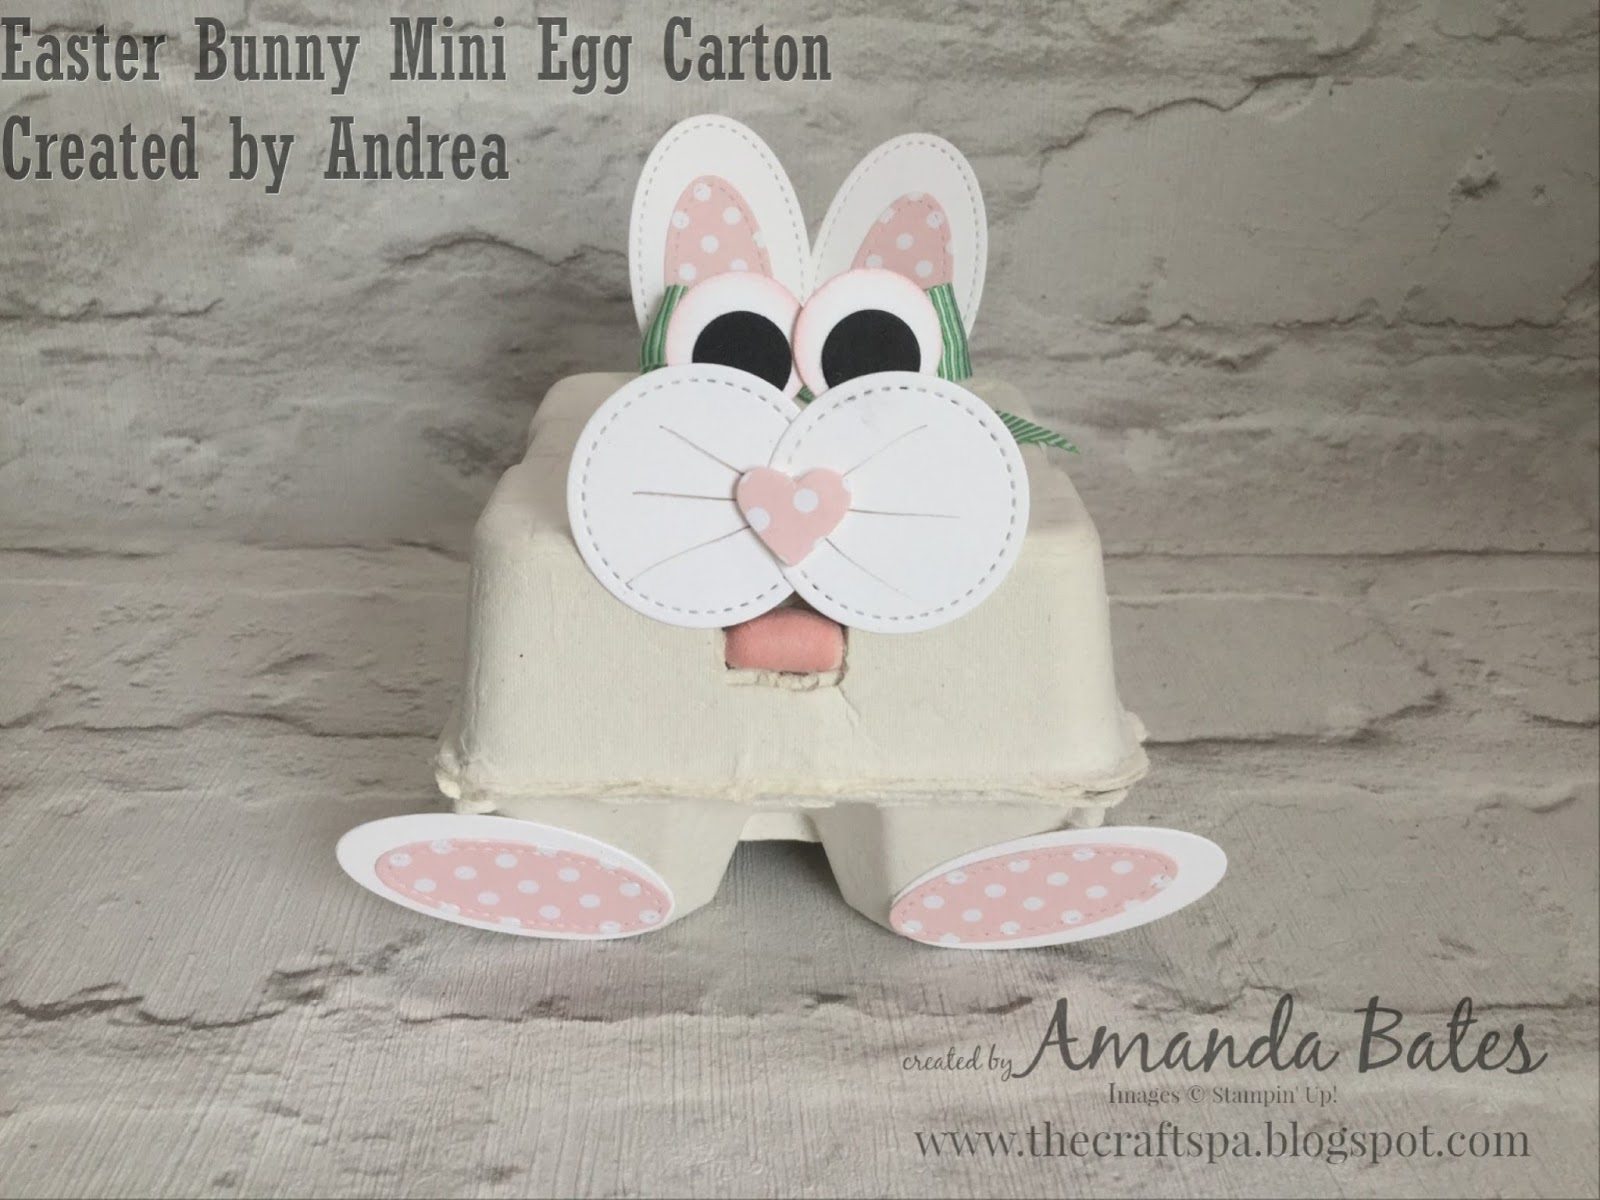 Sitty Uppy Easter Bunny Mini Egg Carton